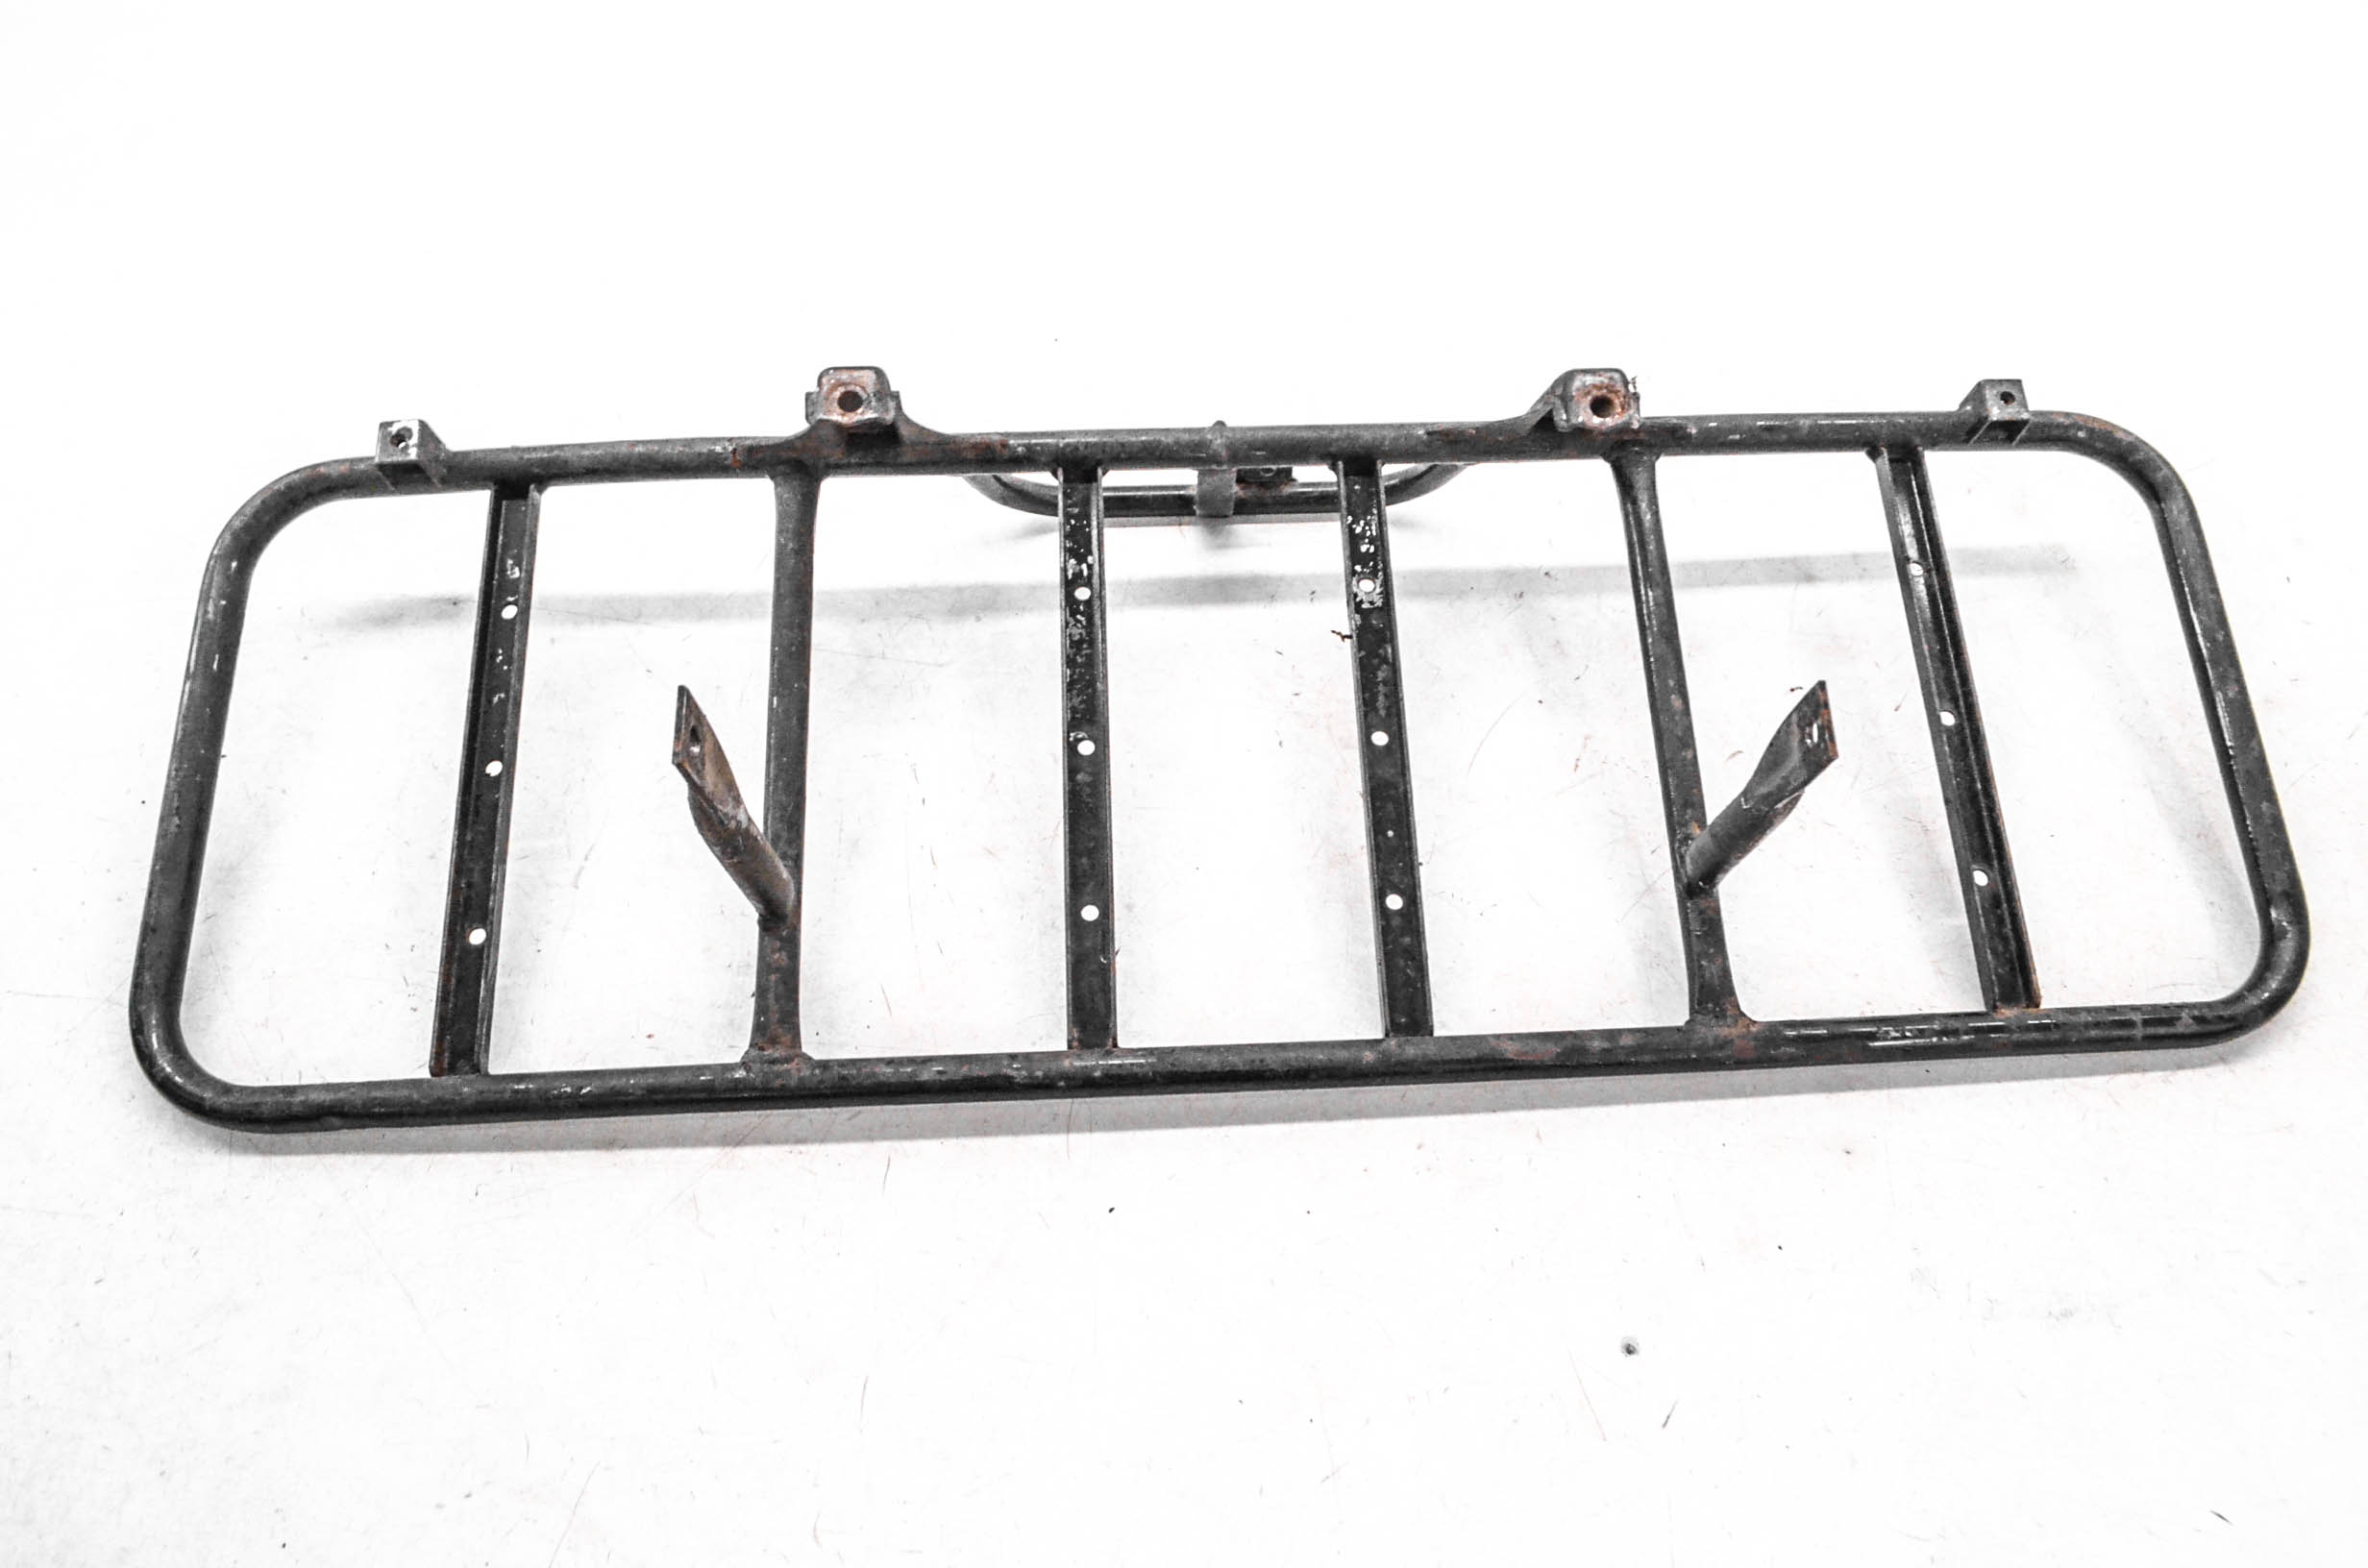 00 Yamaha Grizzly 600 4x4 Front Rack Carrier Yfm600f